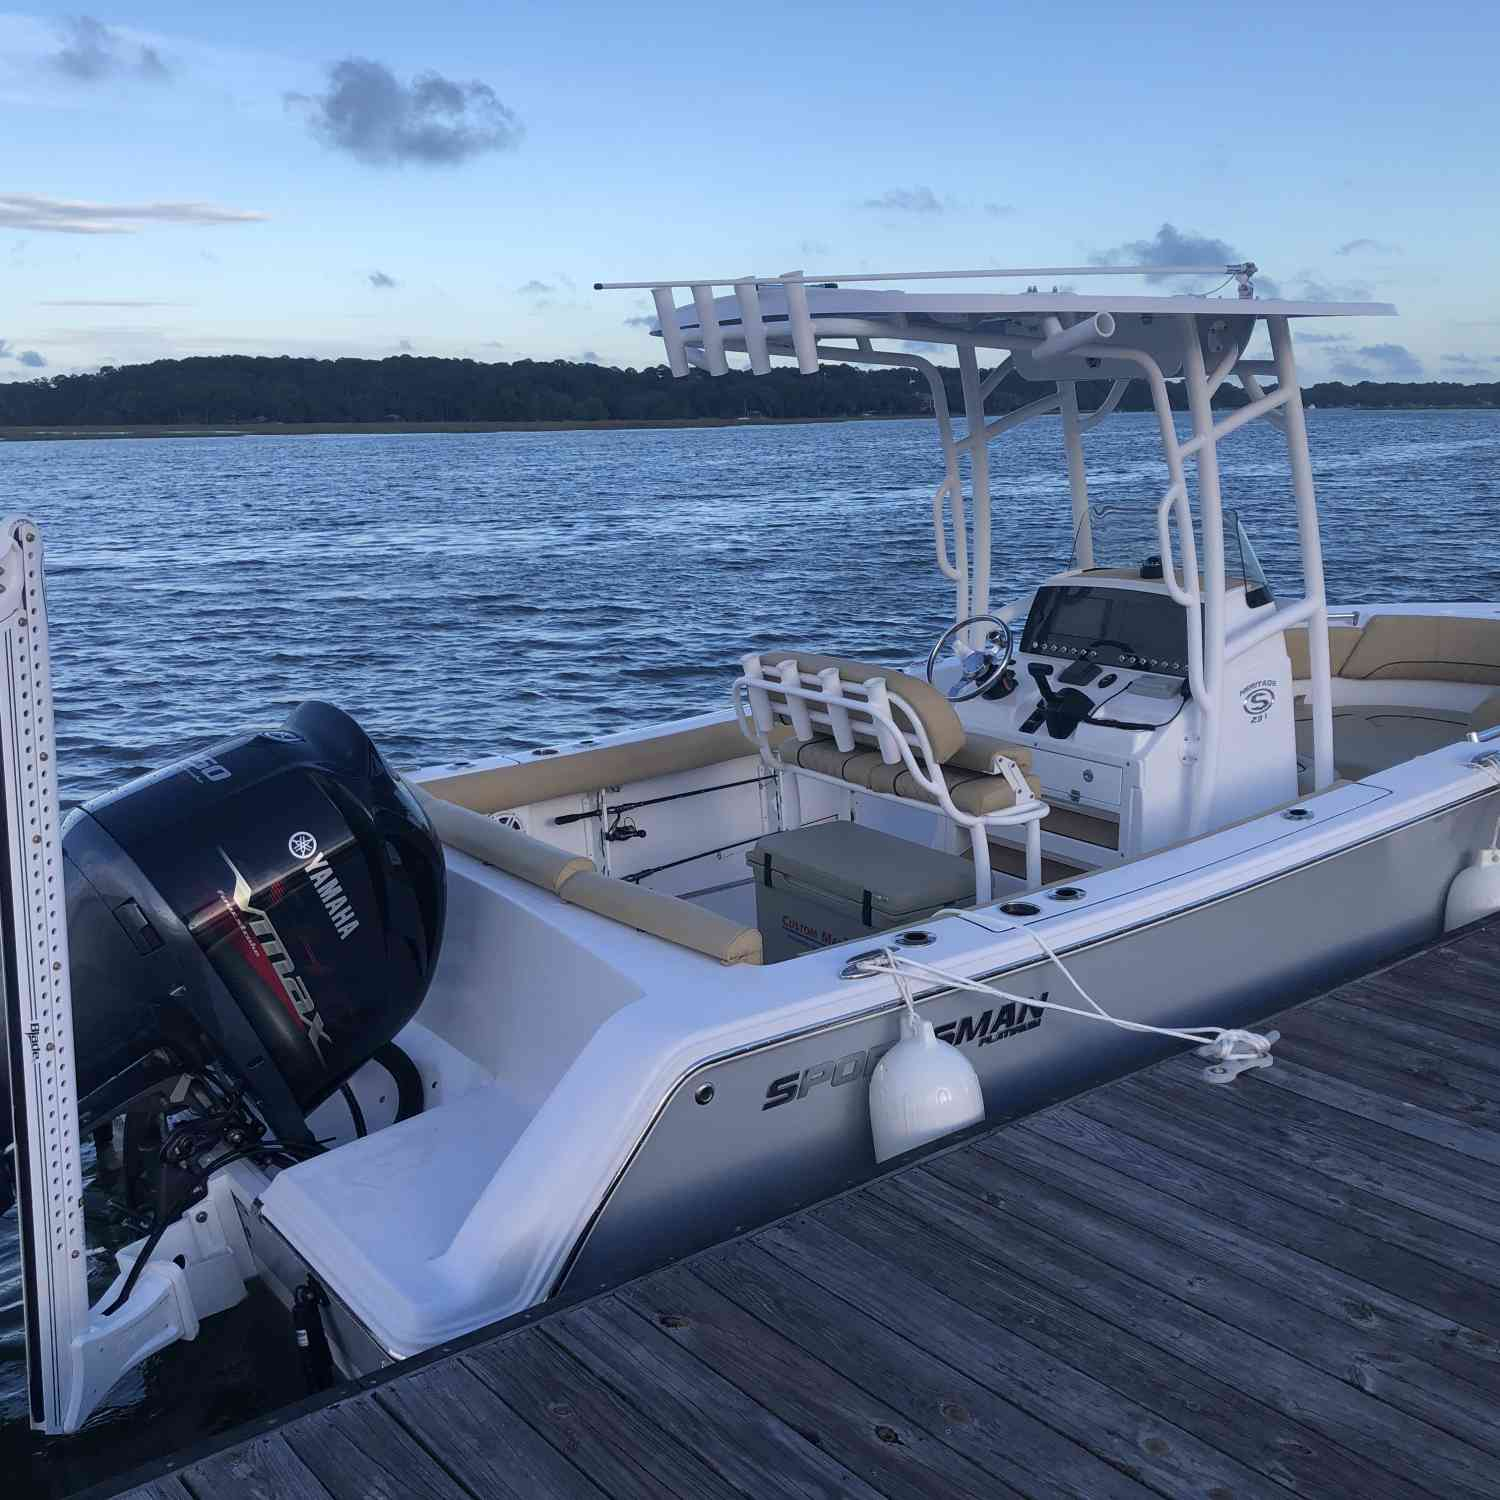 Title: ~Welcome Home~ - On board their Sportsman Heritage 231 Center Console - Location: Beaufort, SC. Participating in the Photo Contest #SportsmanJune2021